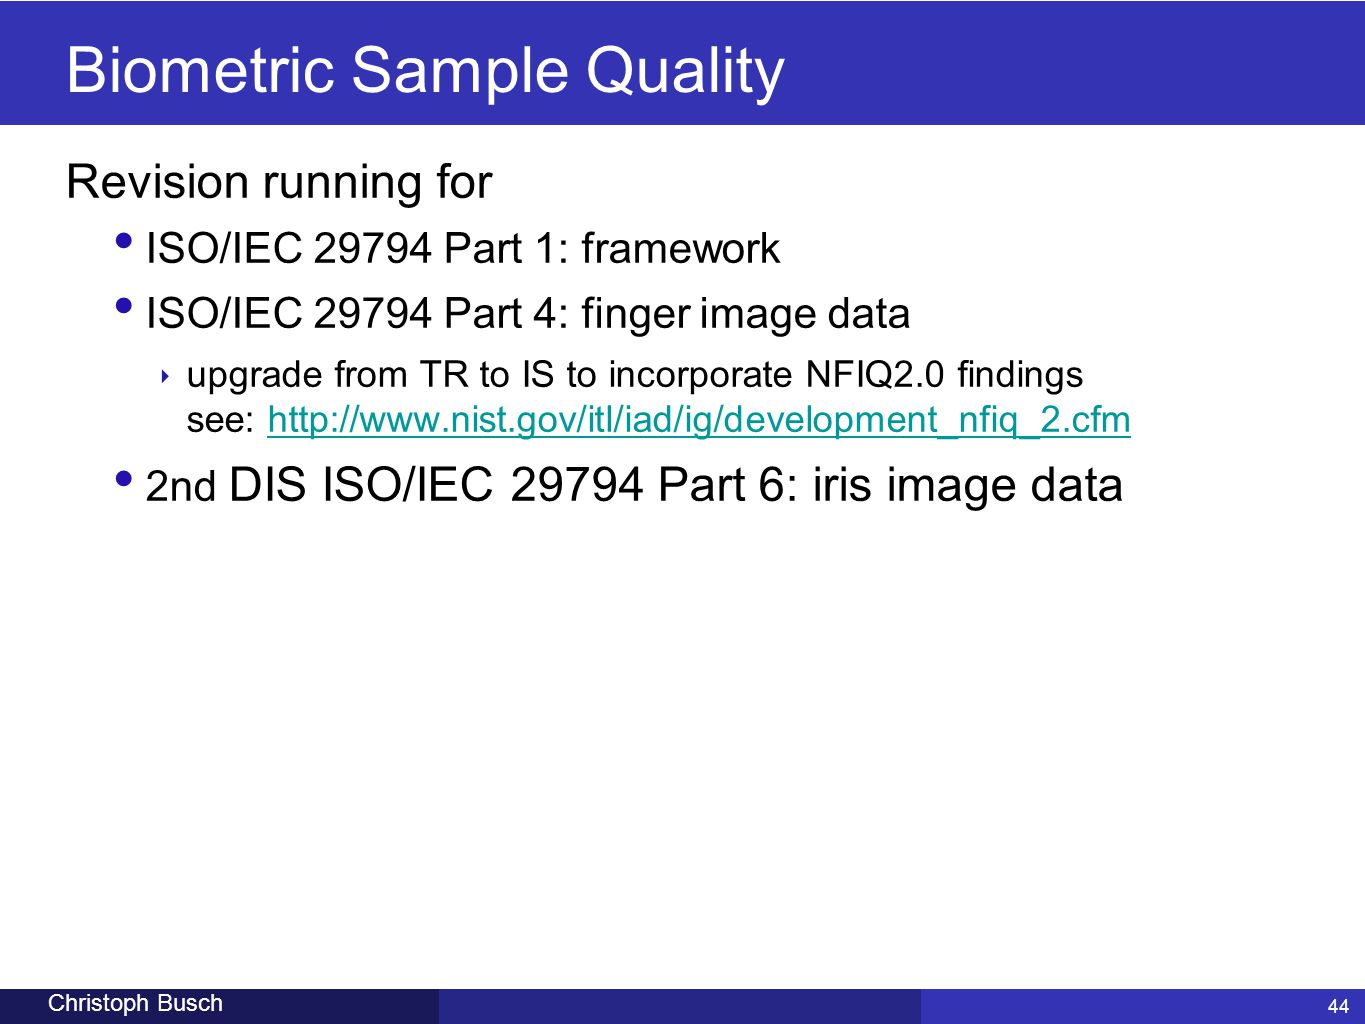 44 Christoph Busch Biometric Sample Quality Revision running for ISO/IEC 29794 Part 1: framework ISO/IEC 29794 Part 4: finger image data ‣ upgrade fro